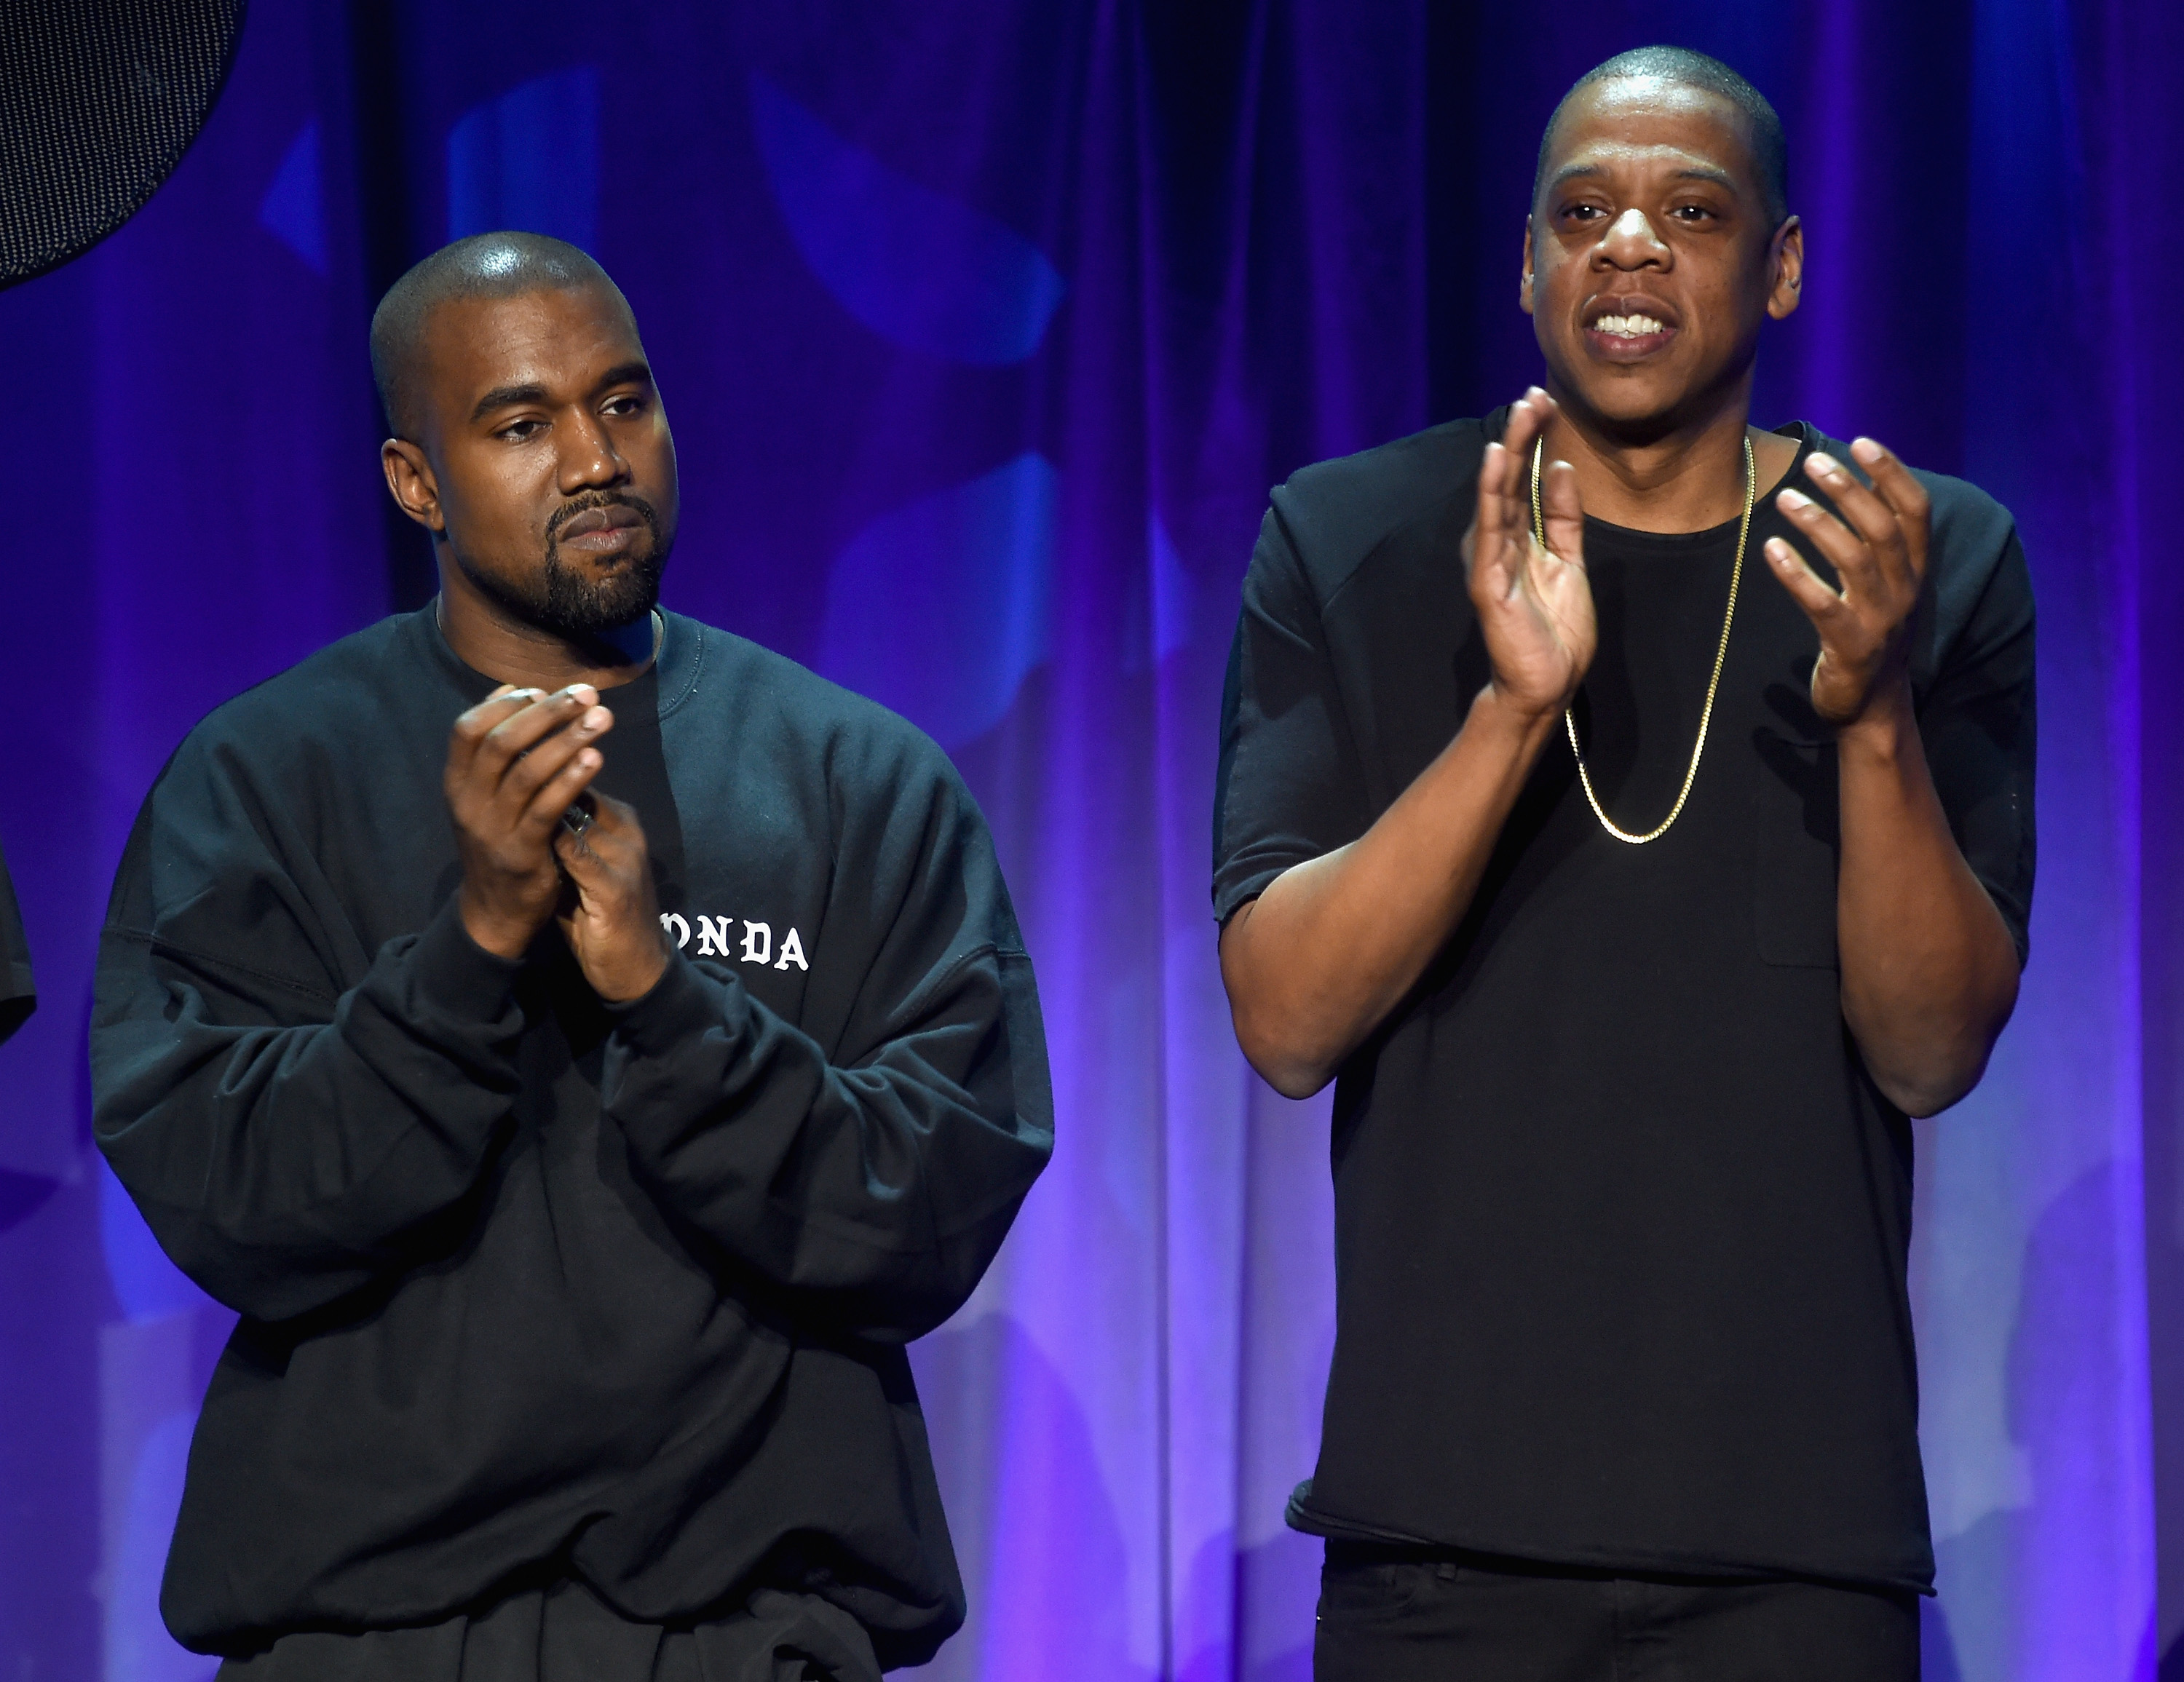 Kanye West (L) and JAY-Z onstage at the Tidal launch event #TIDALforALL at Skylight at Moynihan Station on March 30, 2015 in New York City.